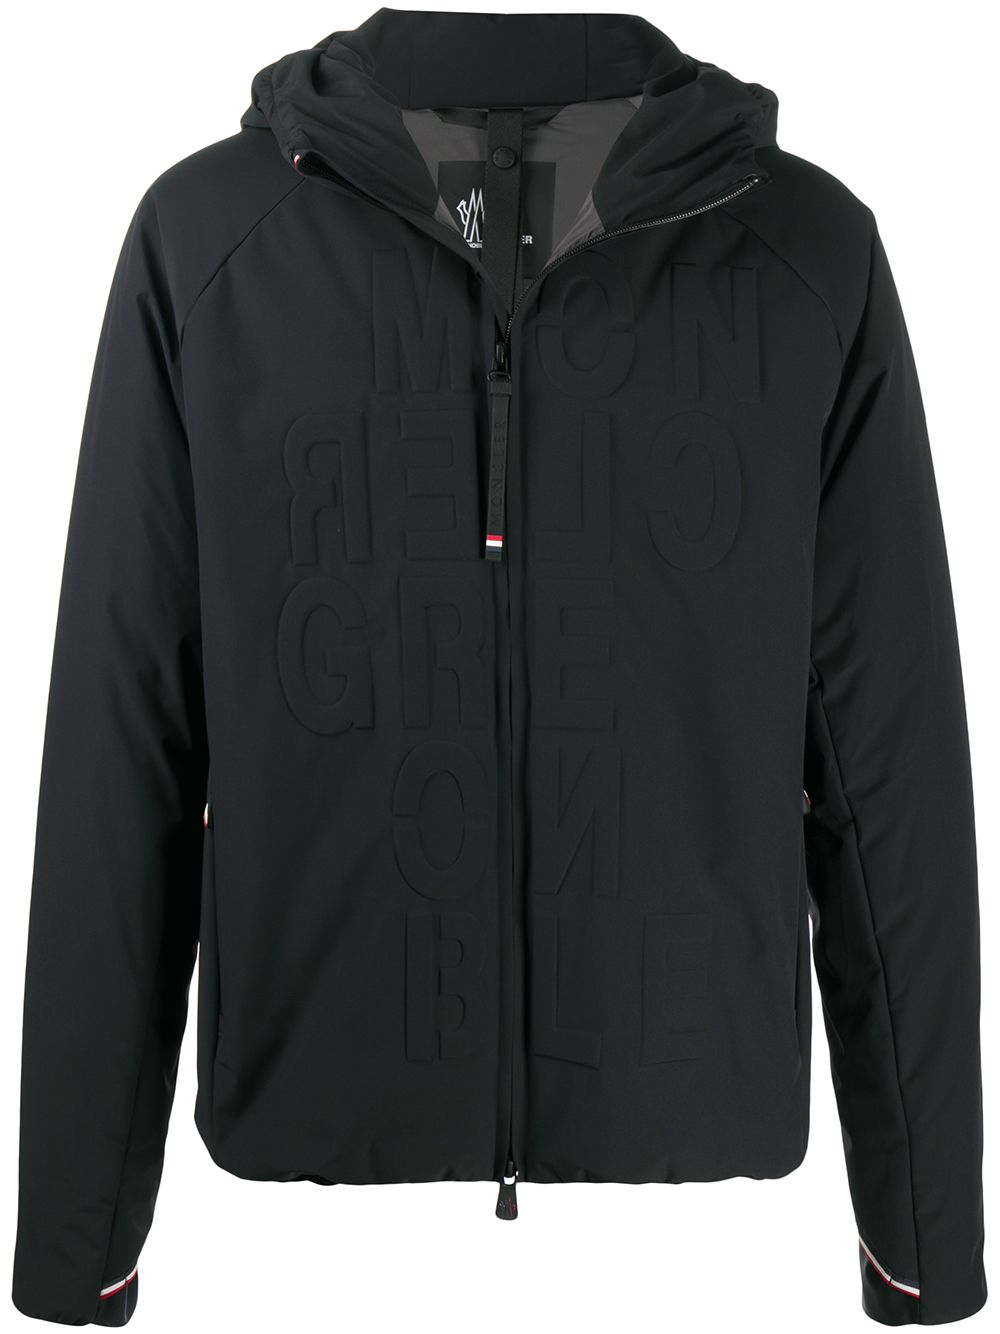 MONCLER GRENOBLE Logo Embossed Jacket Black